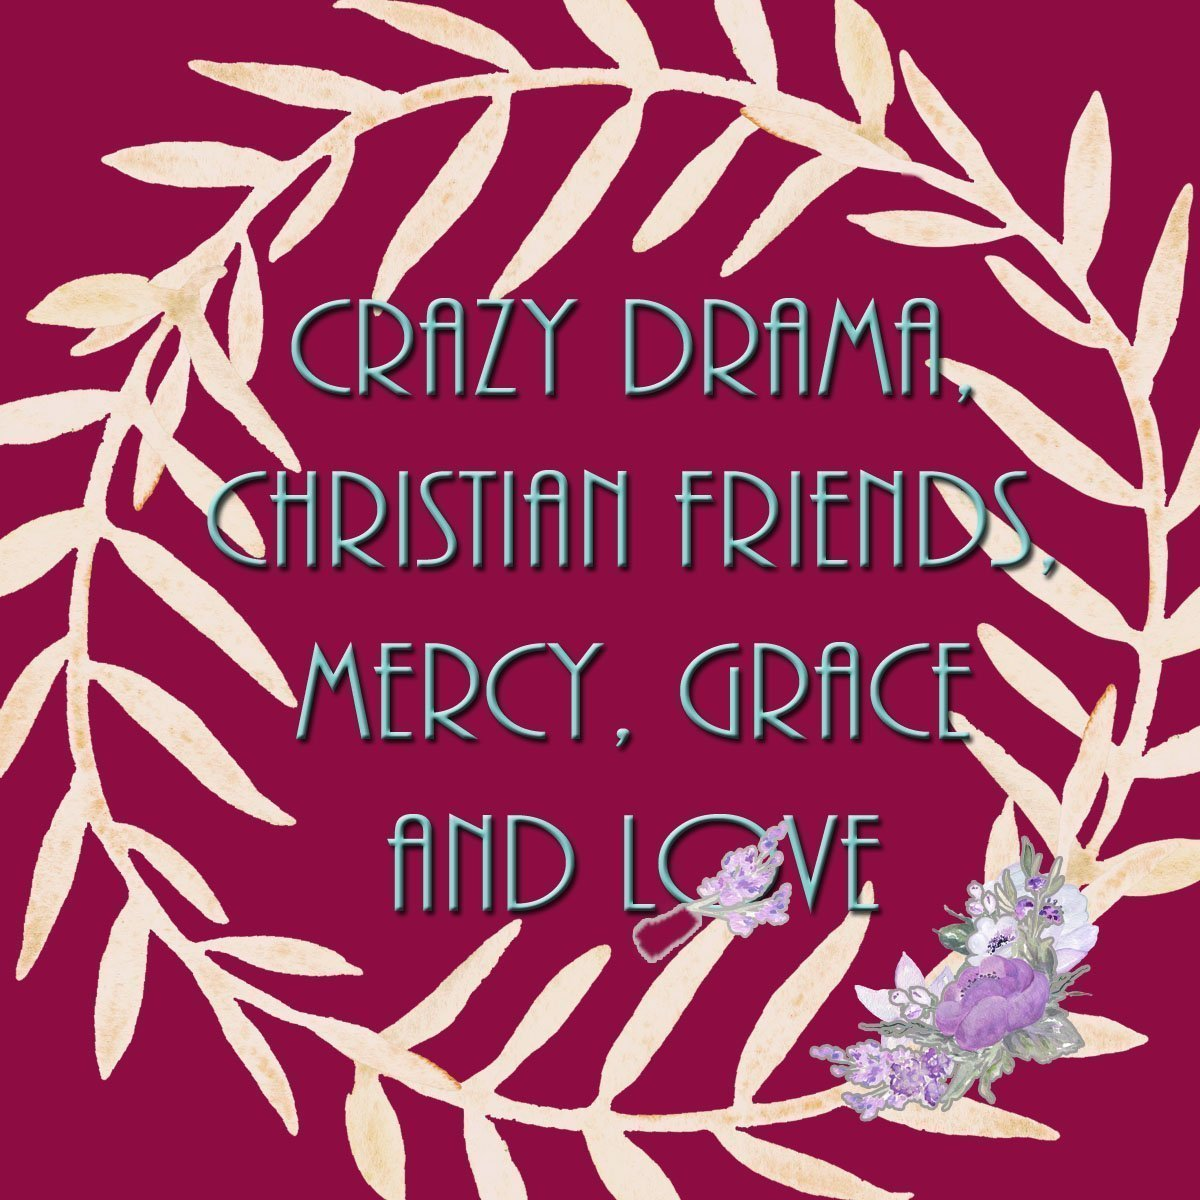 Crazy Drama Graphic